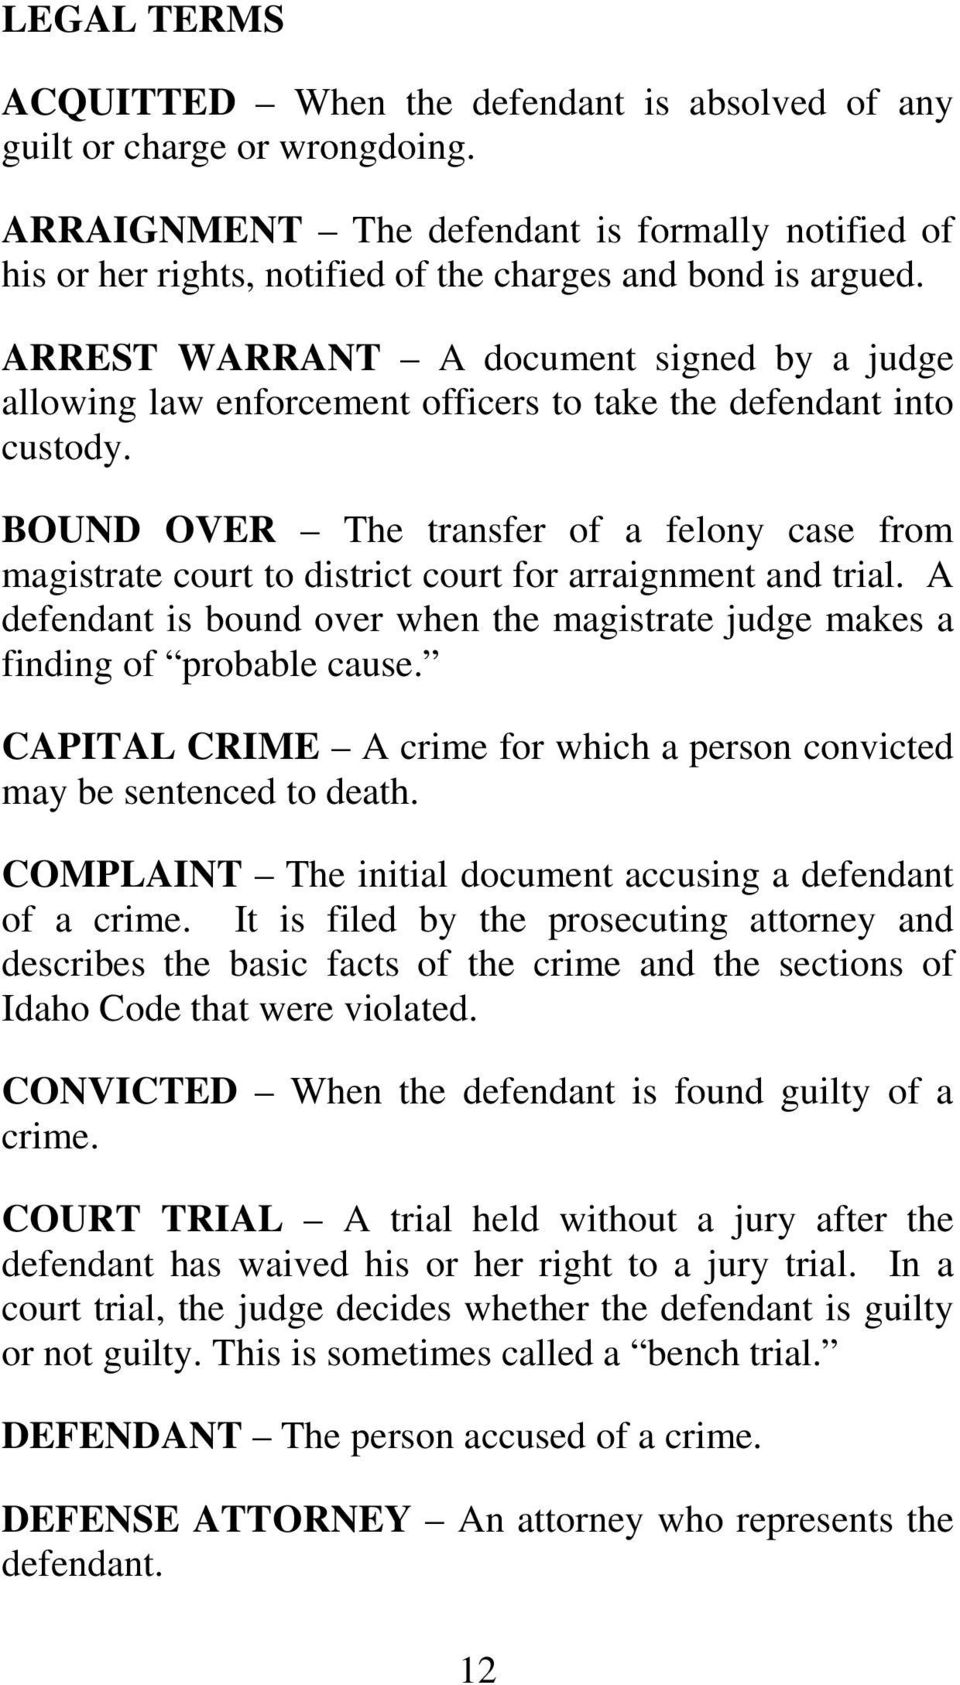 ARREST WARRANT A document signed by a judge allowing law enforcement officers to take the defendant into custody.